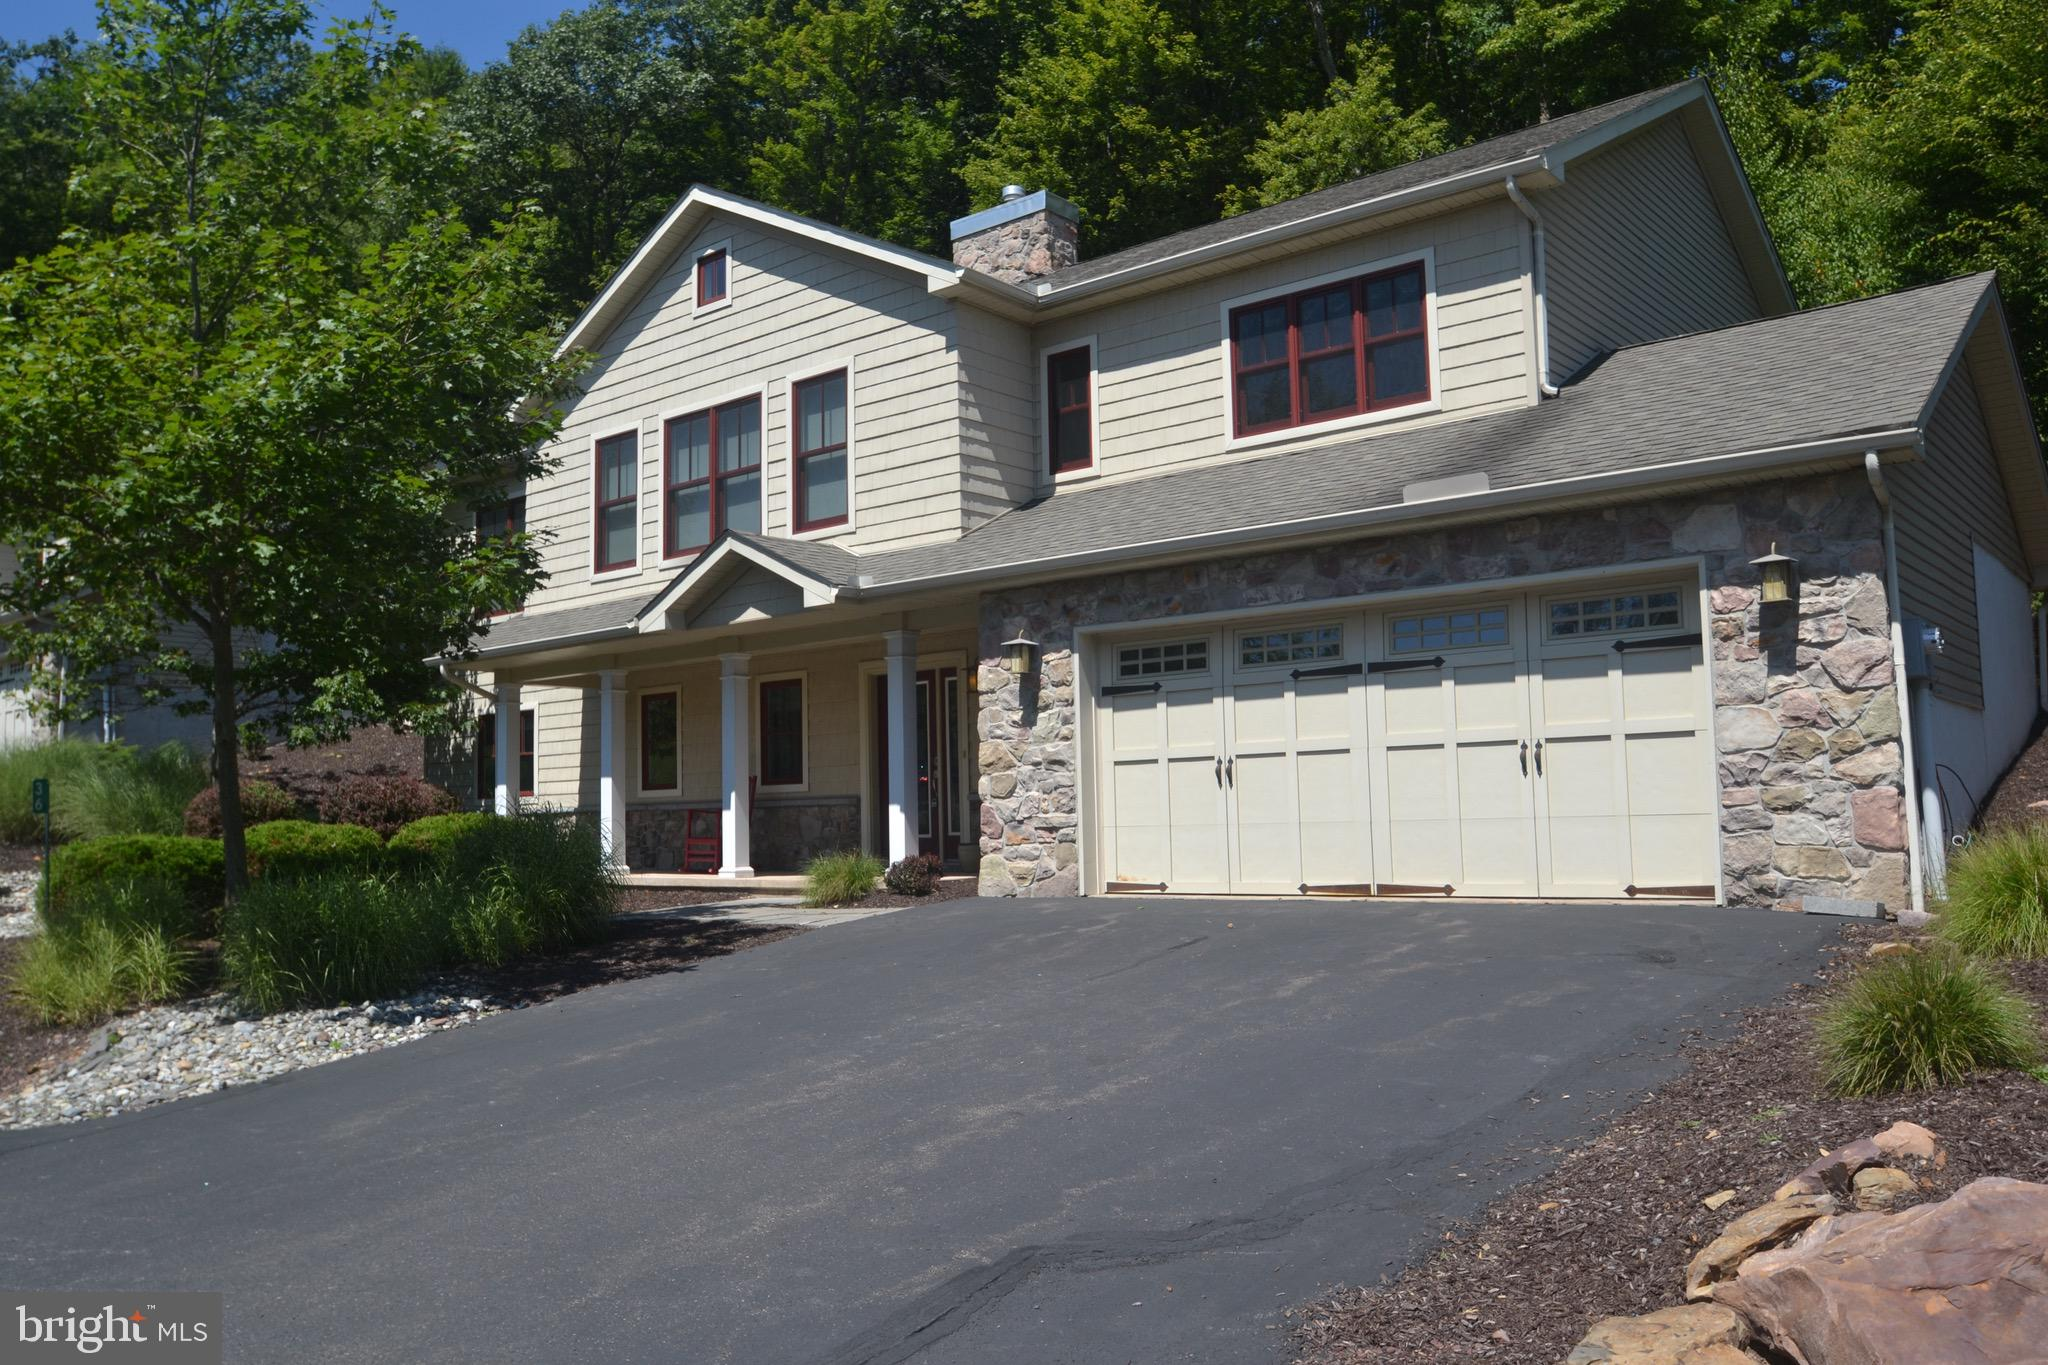 36 BLUESTONE COURT, LAKE HARMONY, PA 18624